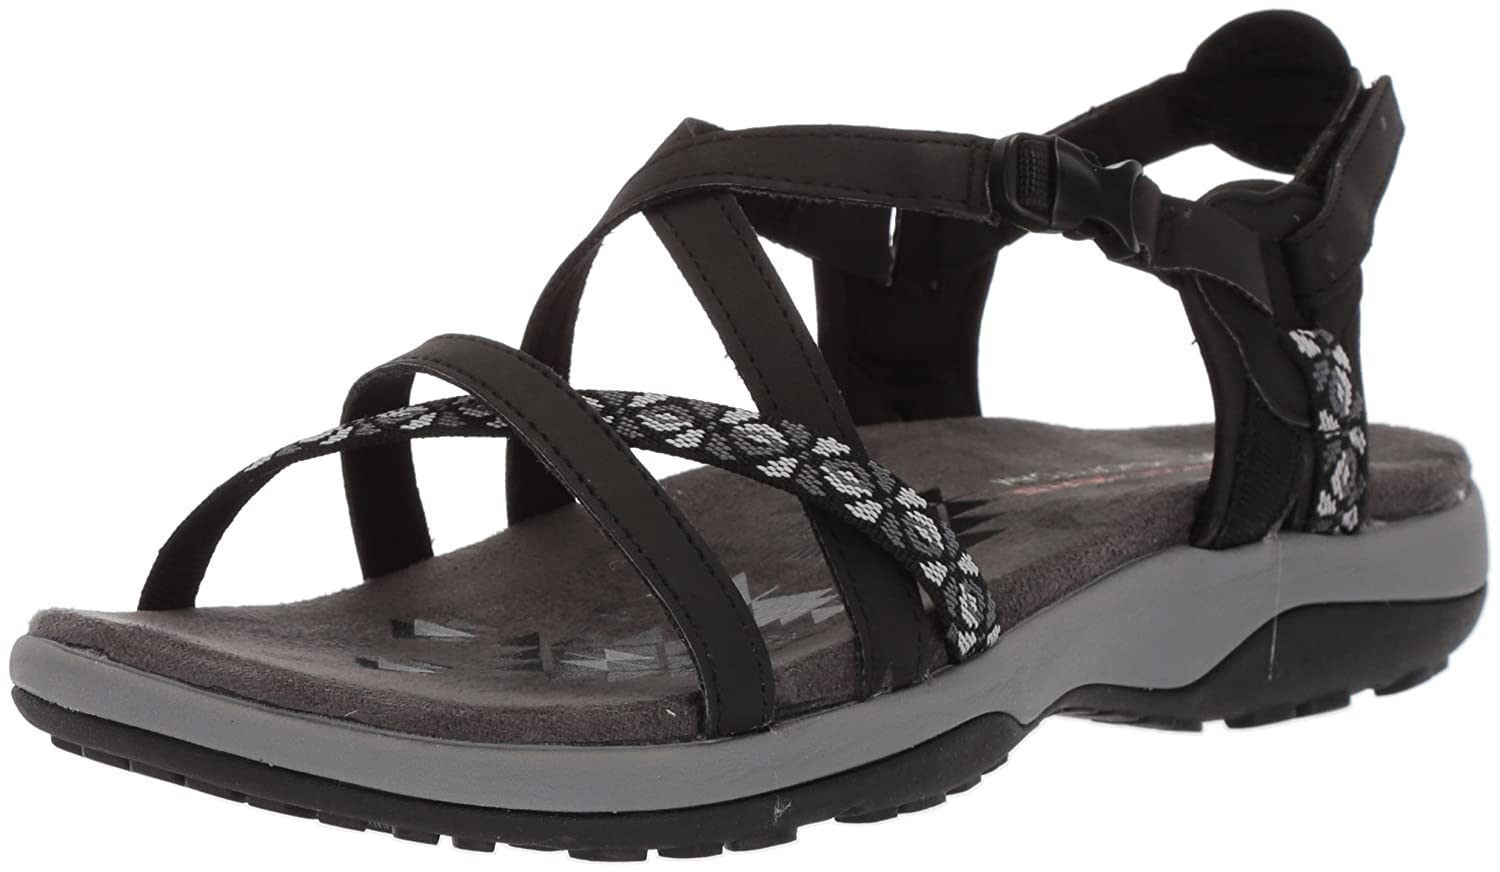 c89ba51baee7 Amazon.com  Skechers Women s Reggae Slim-Vacay Sandals  Shoes